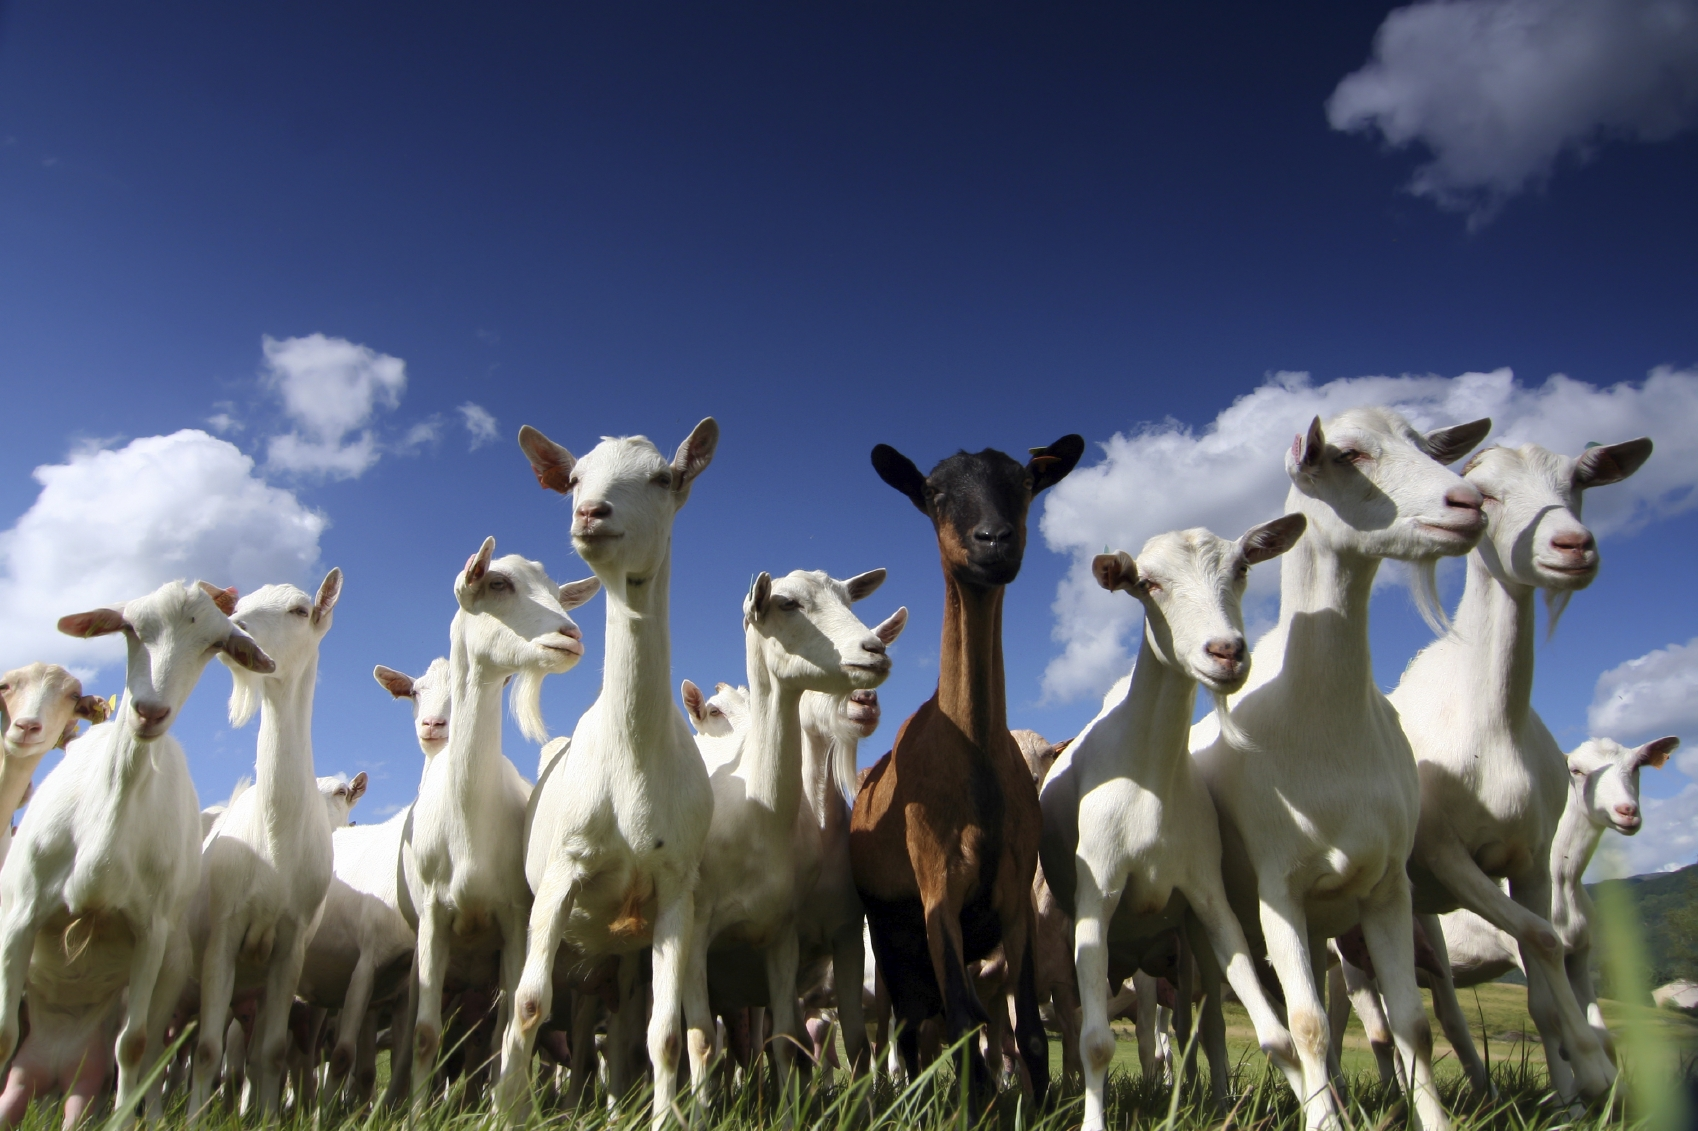 A large group of goats